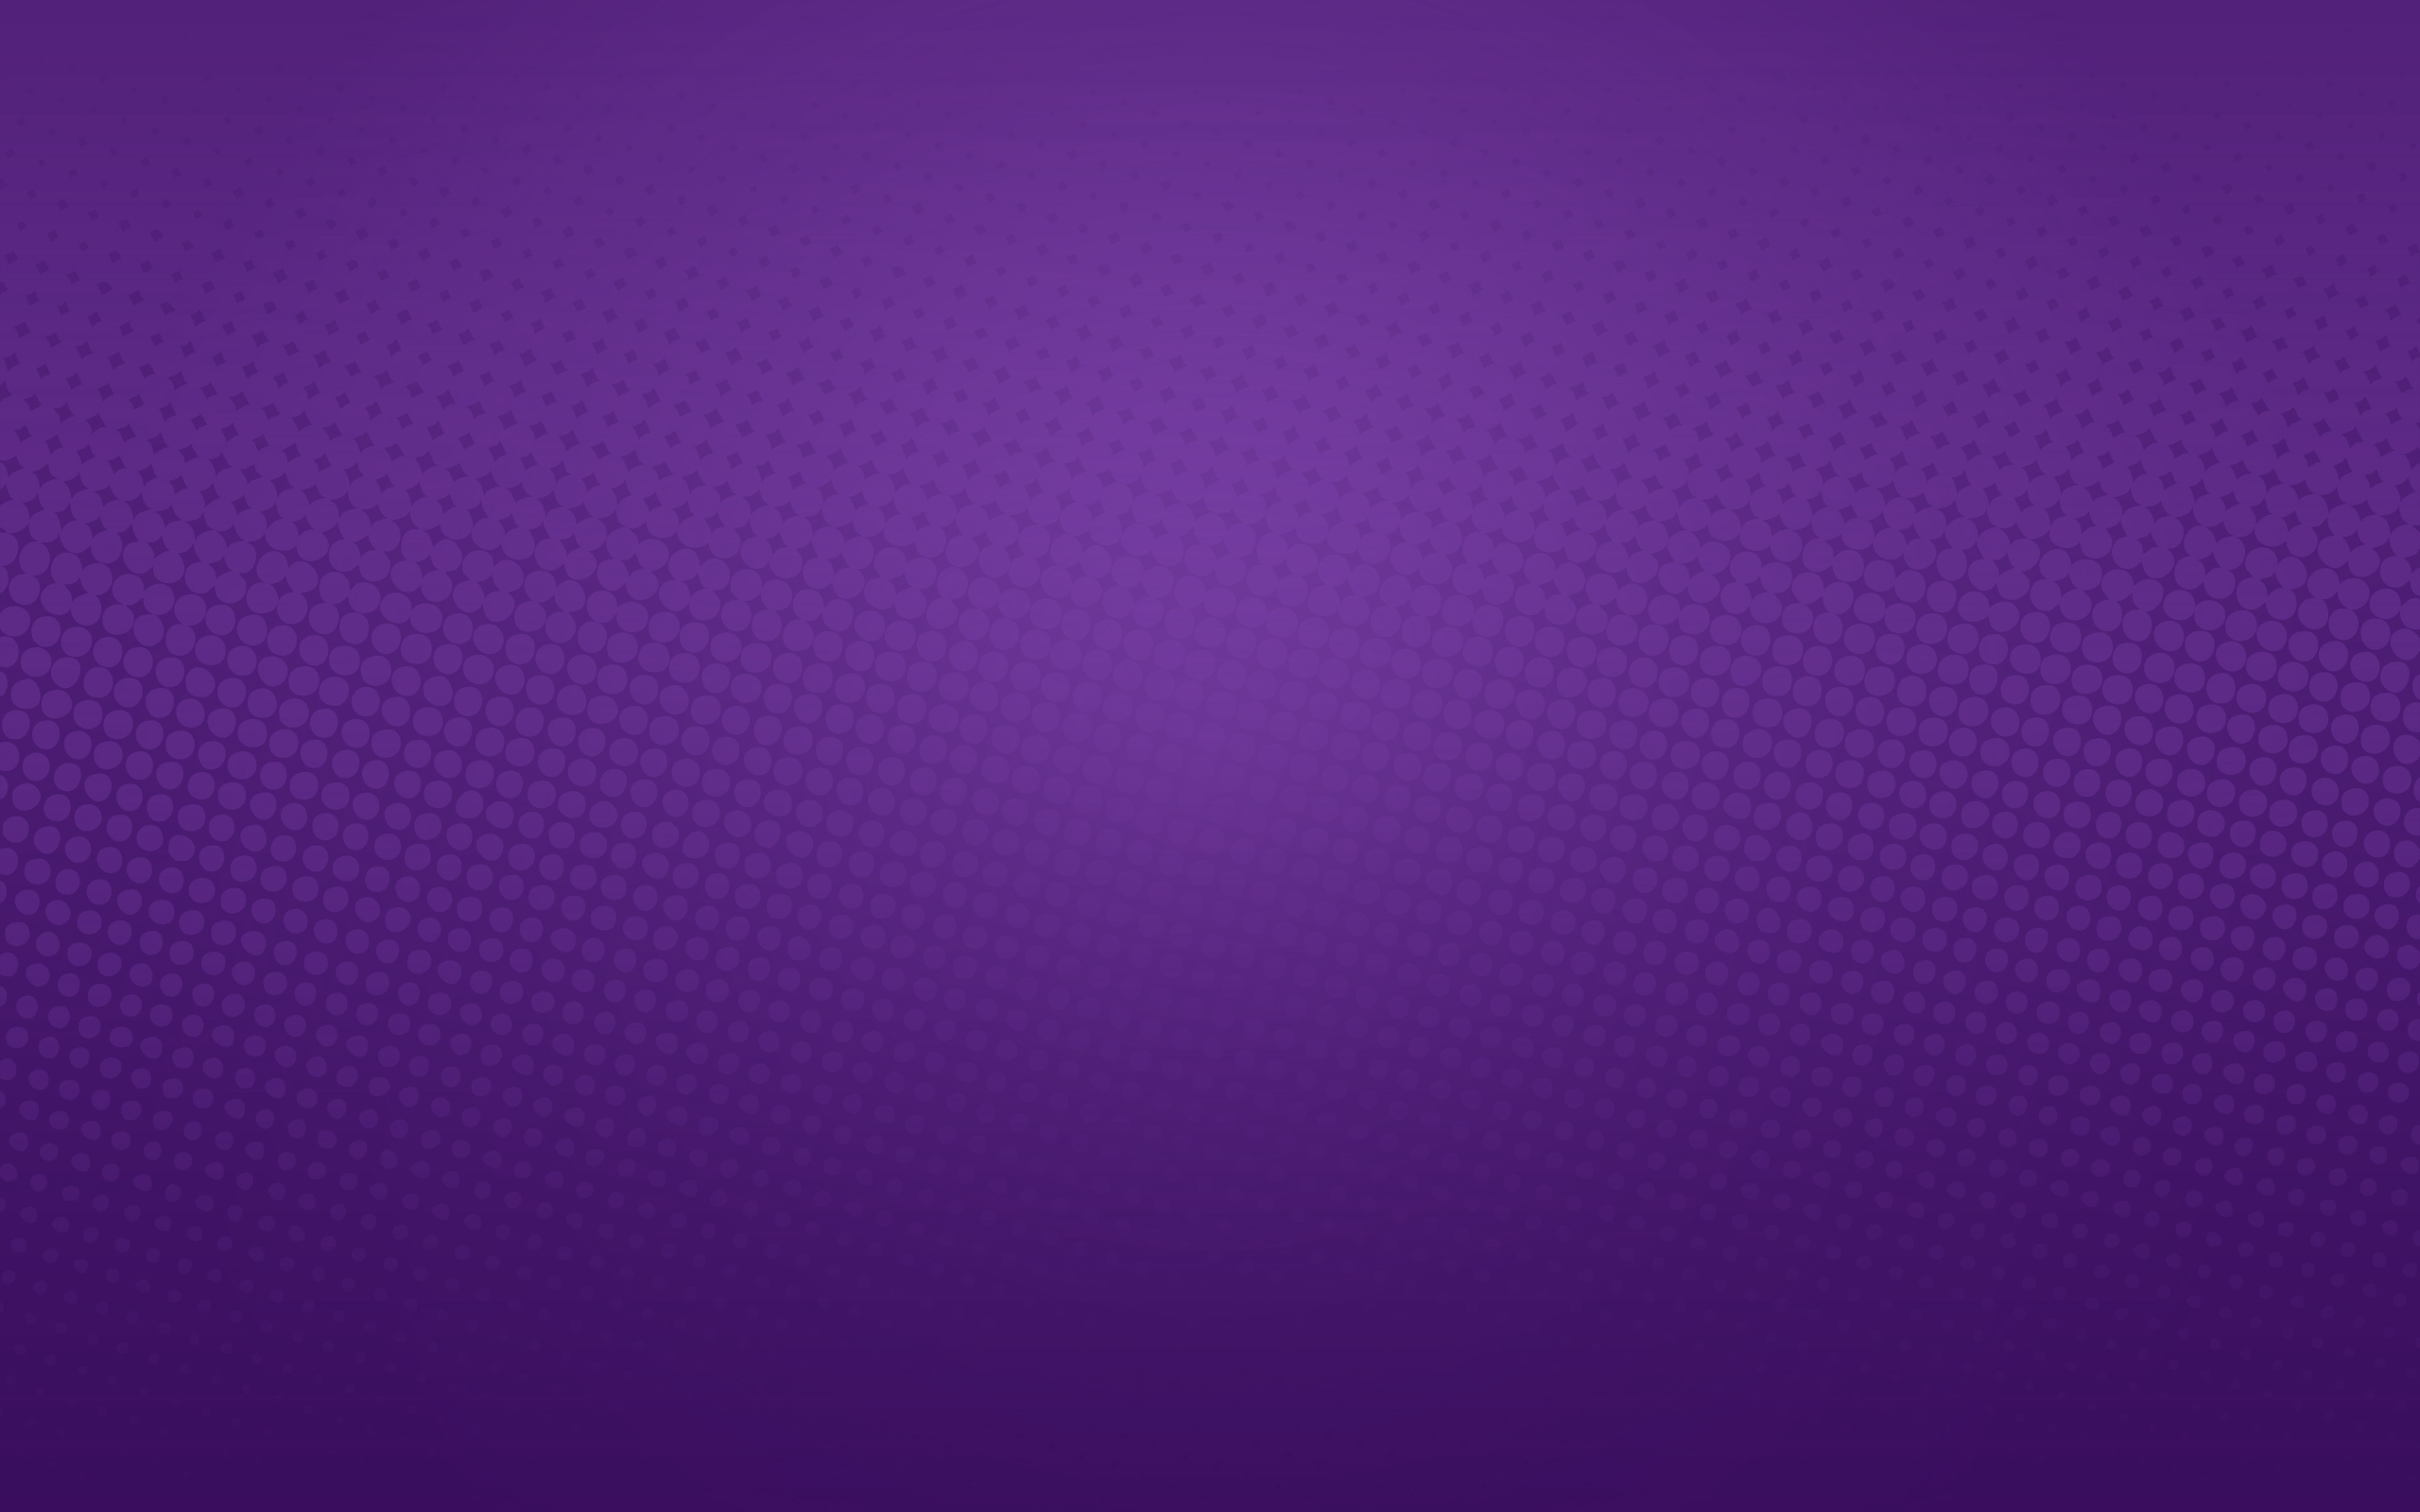 Wallpaper Love Violet : 39 High Definition Purple Wallpaper Images for Free Download